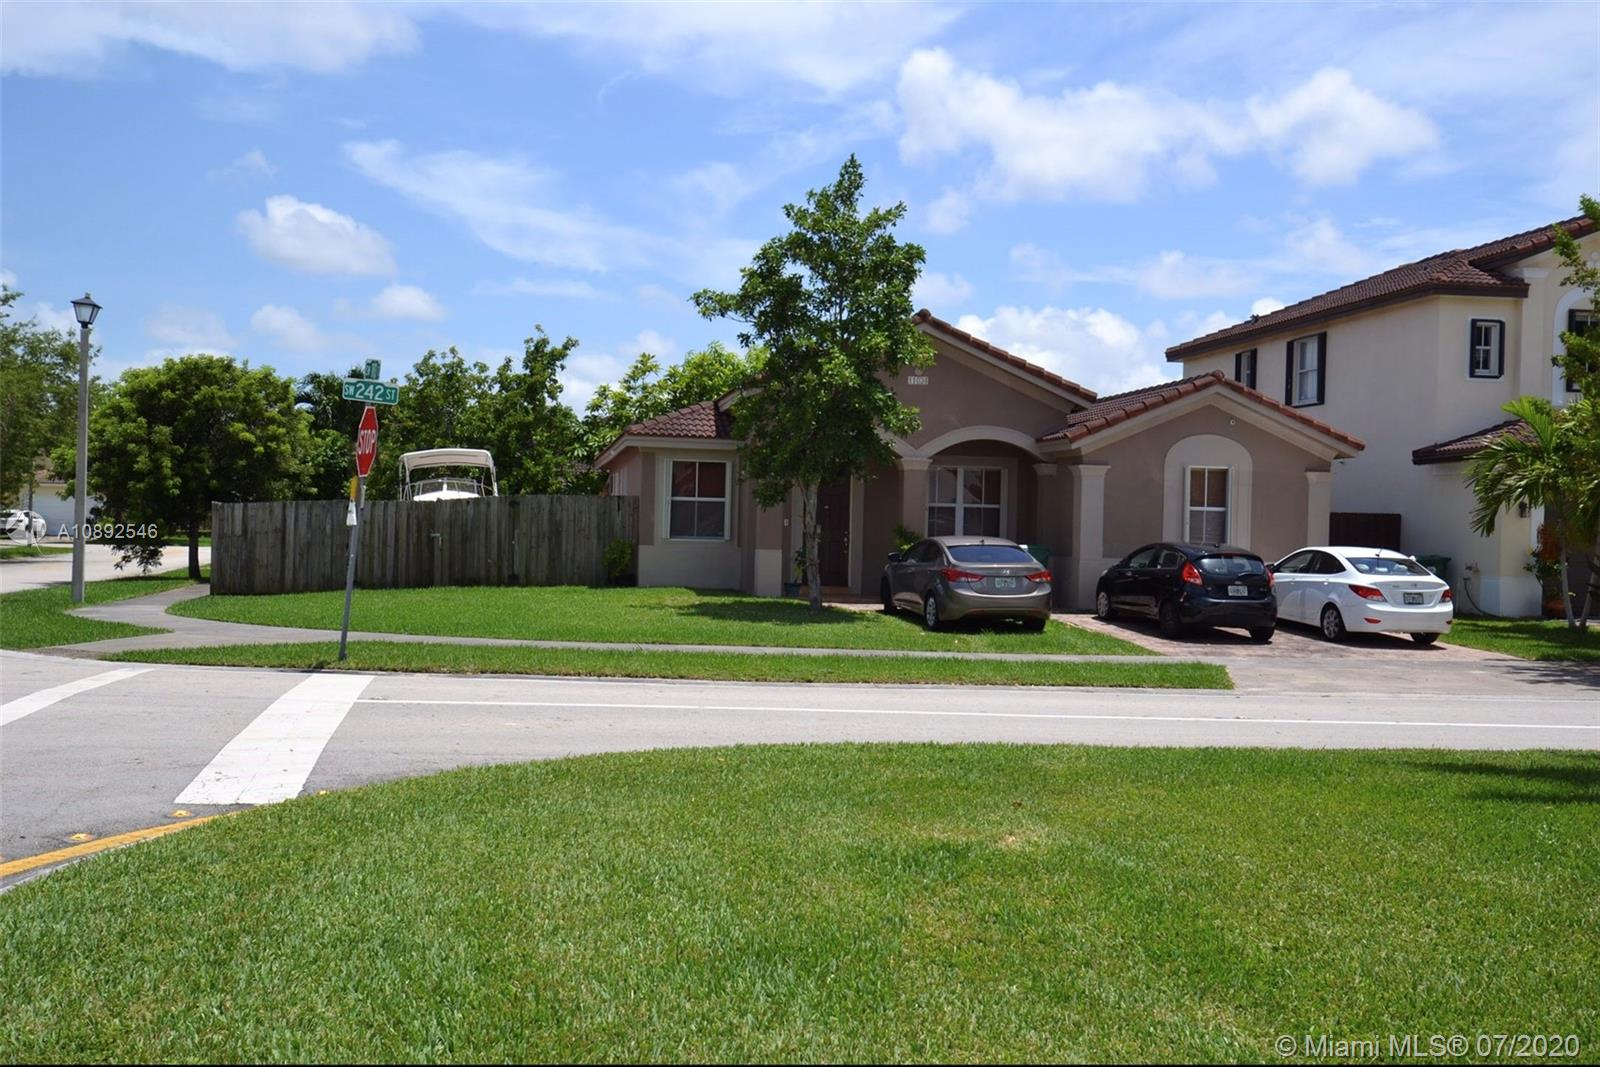 11034 SW 242nd St Property Photo - Homestead, FL real estate listing